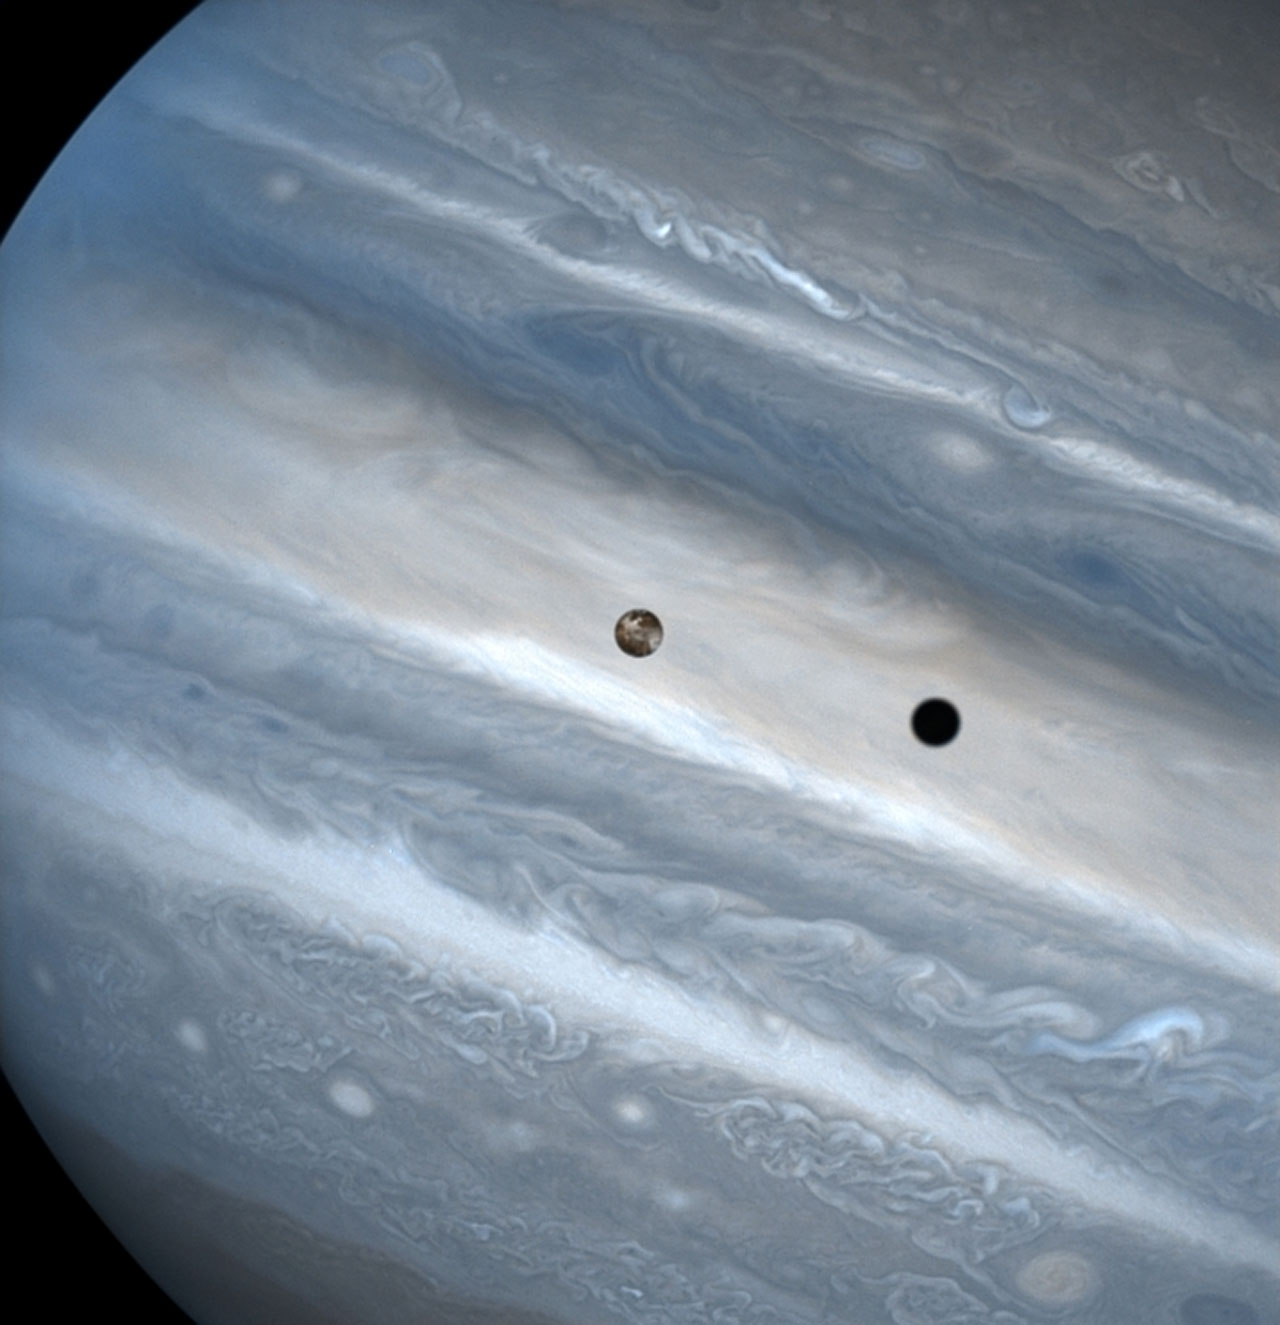 The three snapshots of the volcanic moon rounding Jupiter were taken over a 1.8-hour time span. Io is roughly the size of Earth's moon but 2,000 times farther away. In two of the images, Io appears to be skimming Jupiter's cloud tops, but it's actually 310, 000 miles (500,000 kilometers) away. Io zips around Jupiter in 1.8 days, whereas the moon circles Earth every 28 days. The conspicuous black spot on Jupiter is Io's shadow and is about the size of the moon itself (2,262 miles or 3,640 kilometers across). This shadow sails across the face of Jupiter at 38,000 mph (17 kilometers per second). The smallest details visible on Io and Jupiter measure 93 miles (150 kilometers) across, or about the size of Connecticut.